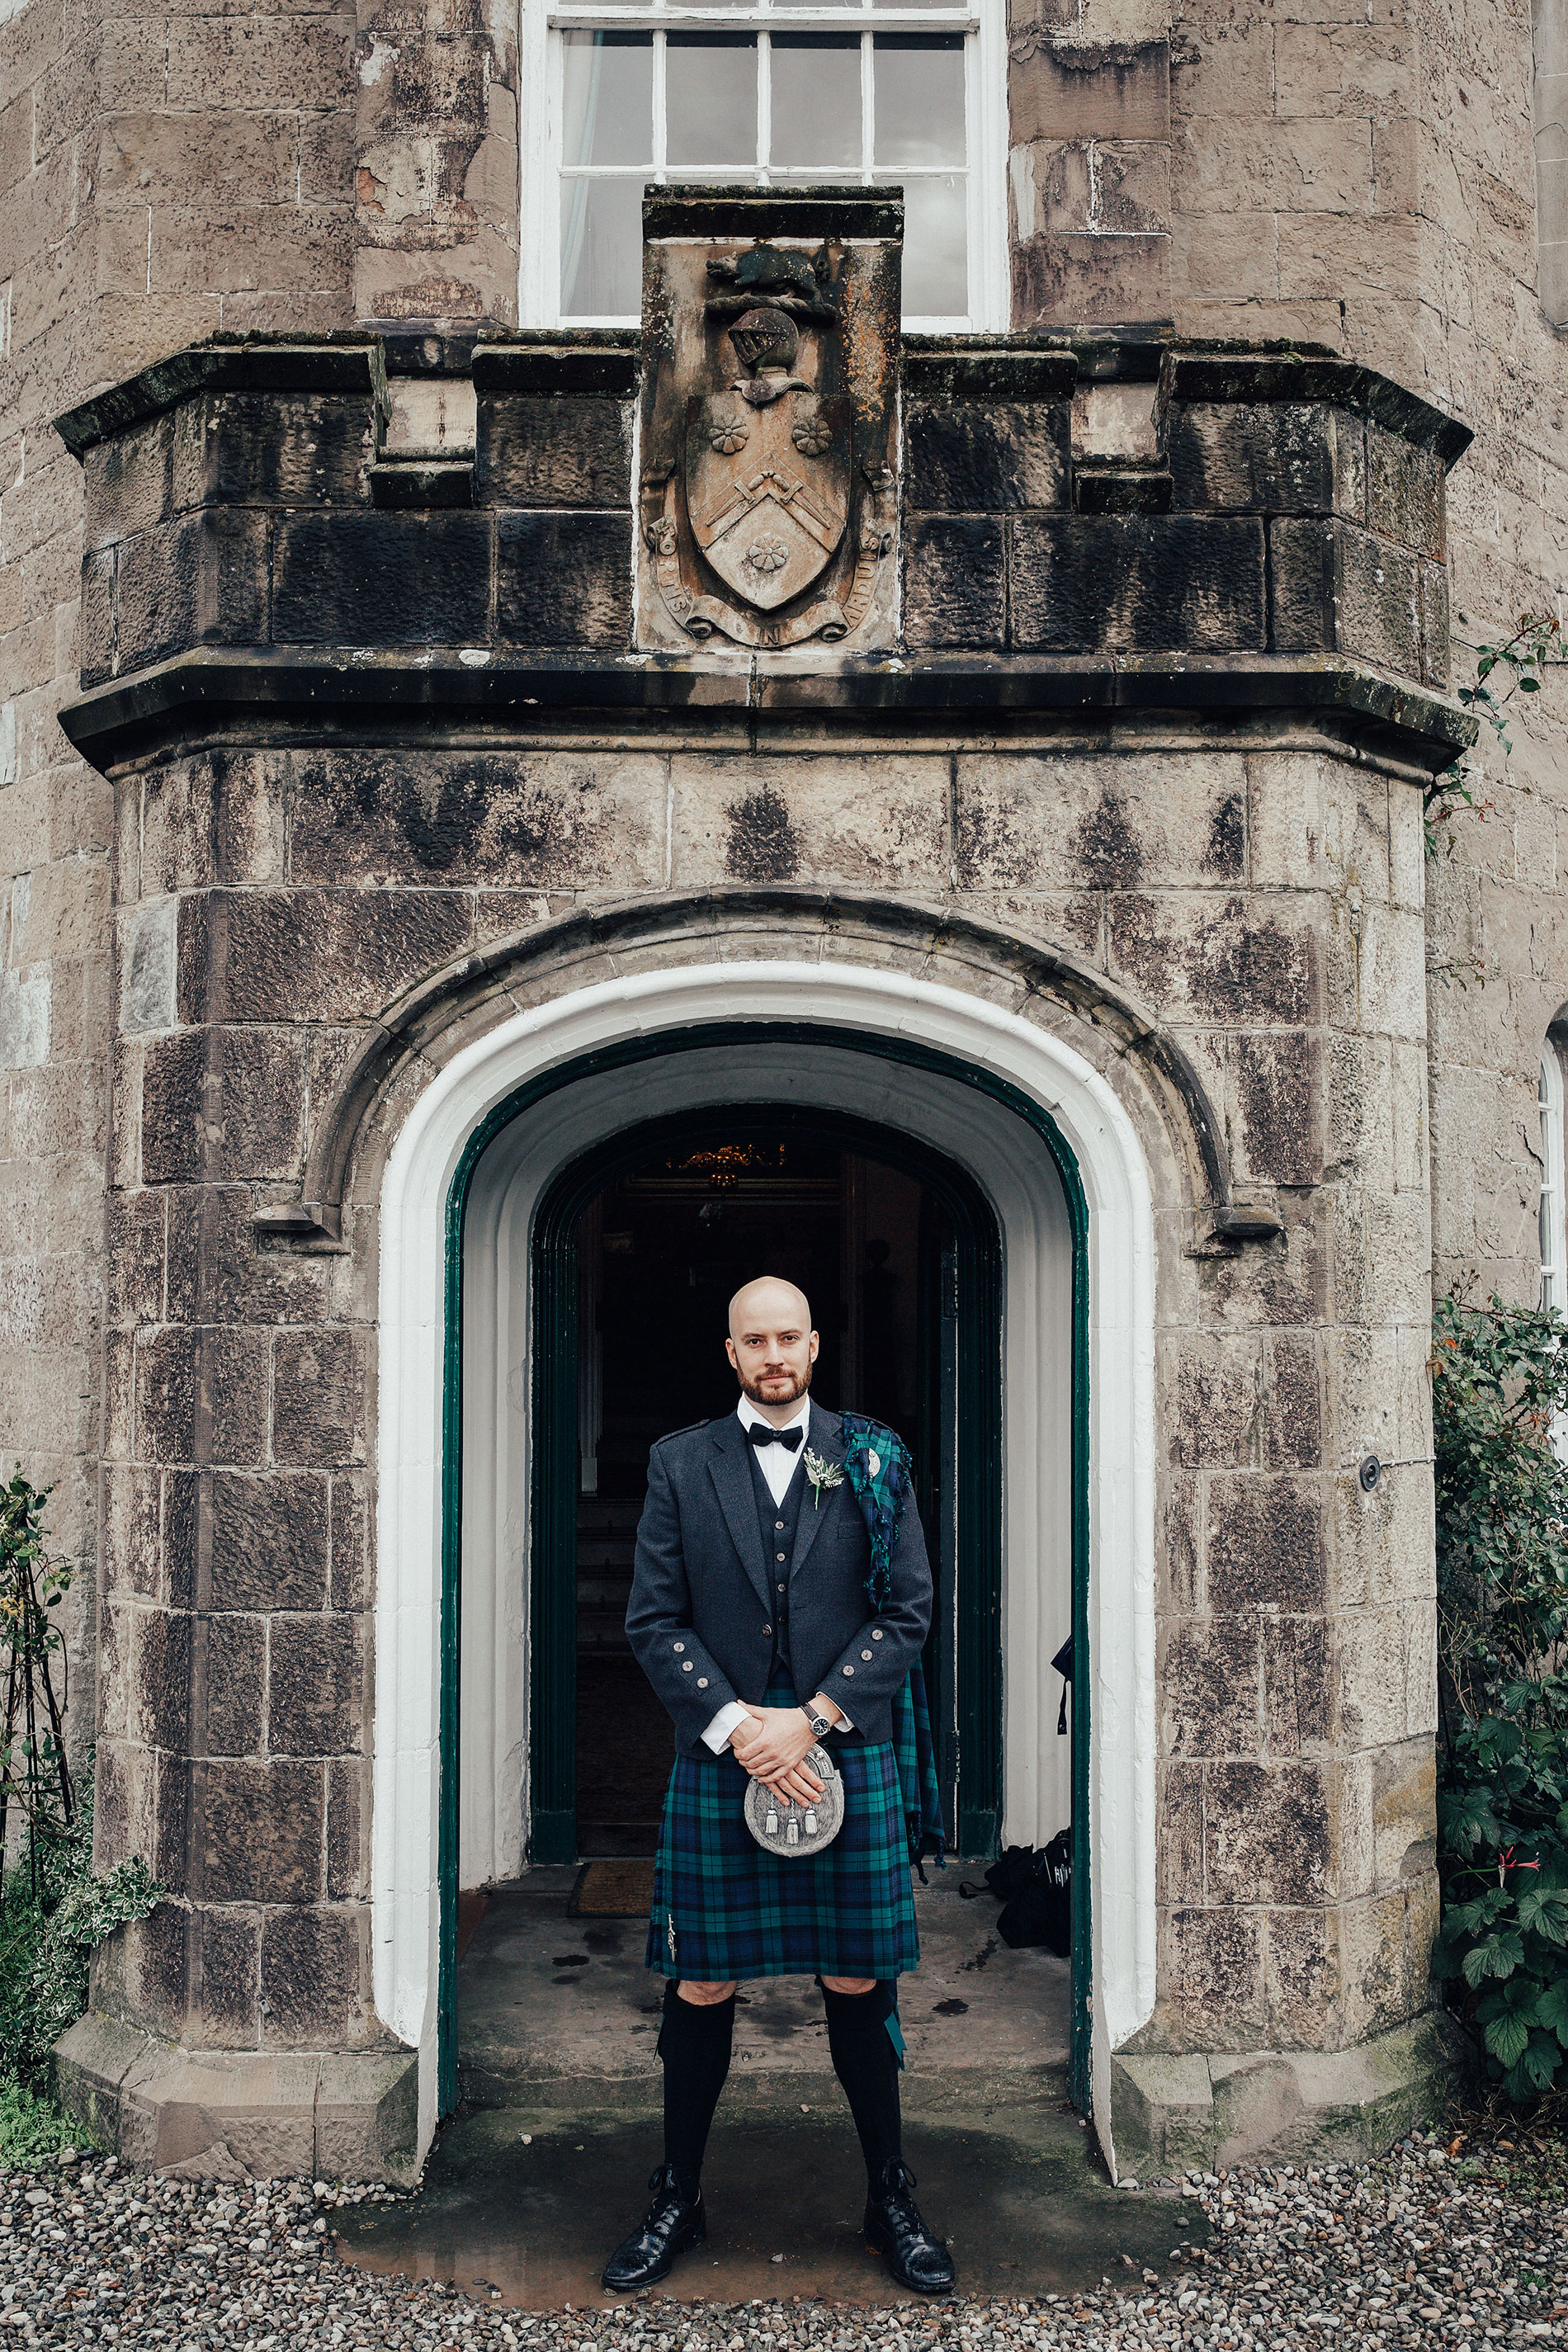 BOTURICH_CASTLE_WEDDING_PHOTOGRAPHER_PJ_PHILLIPS_PHOTOGRAPHY_48.jpg